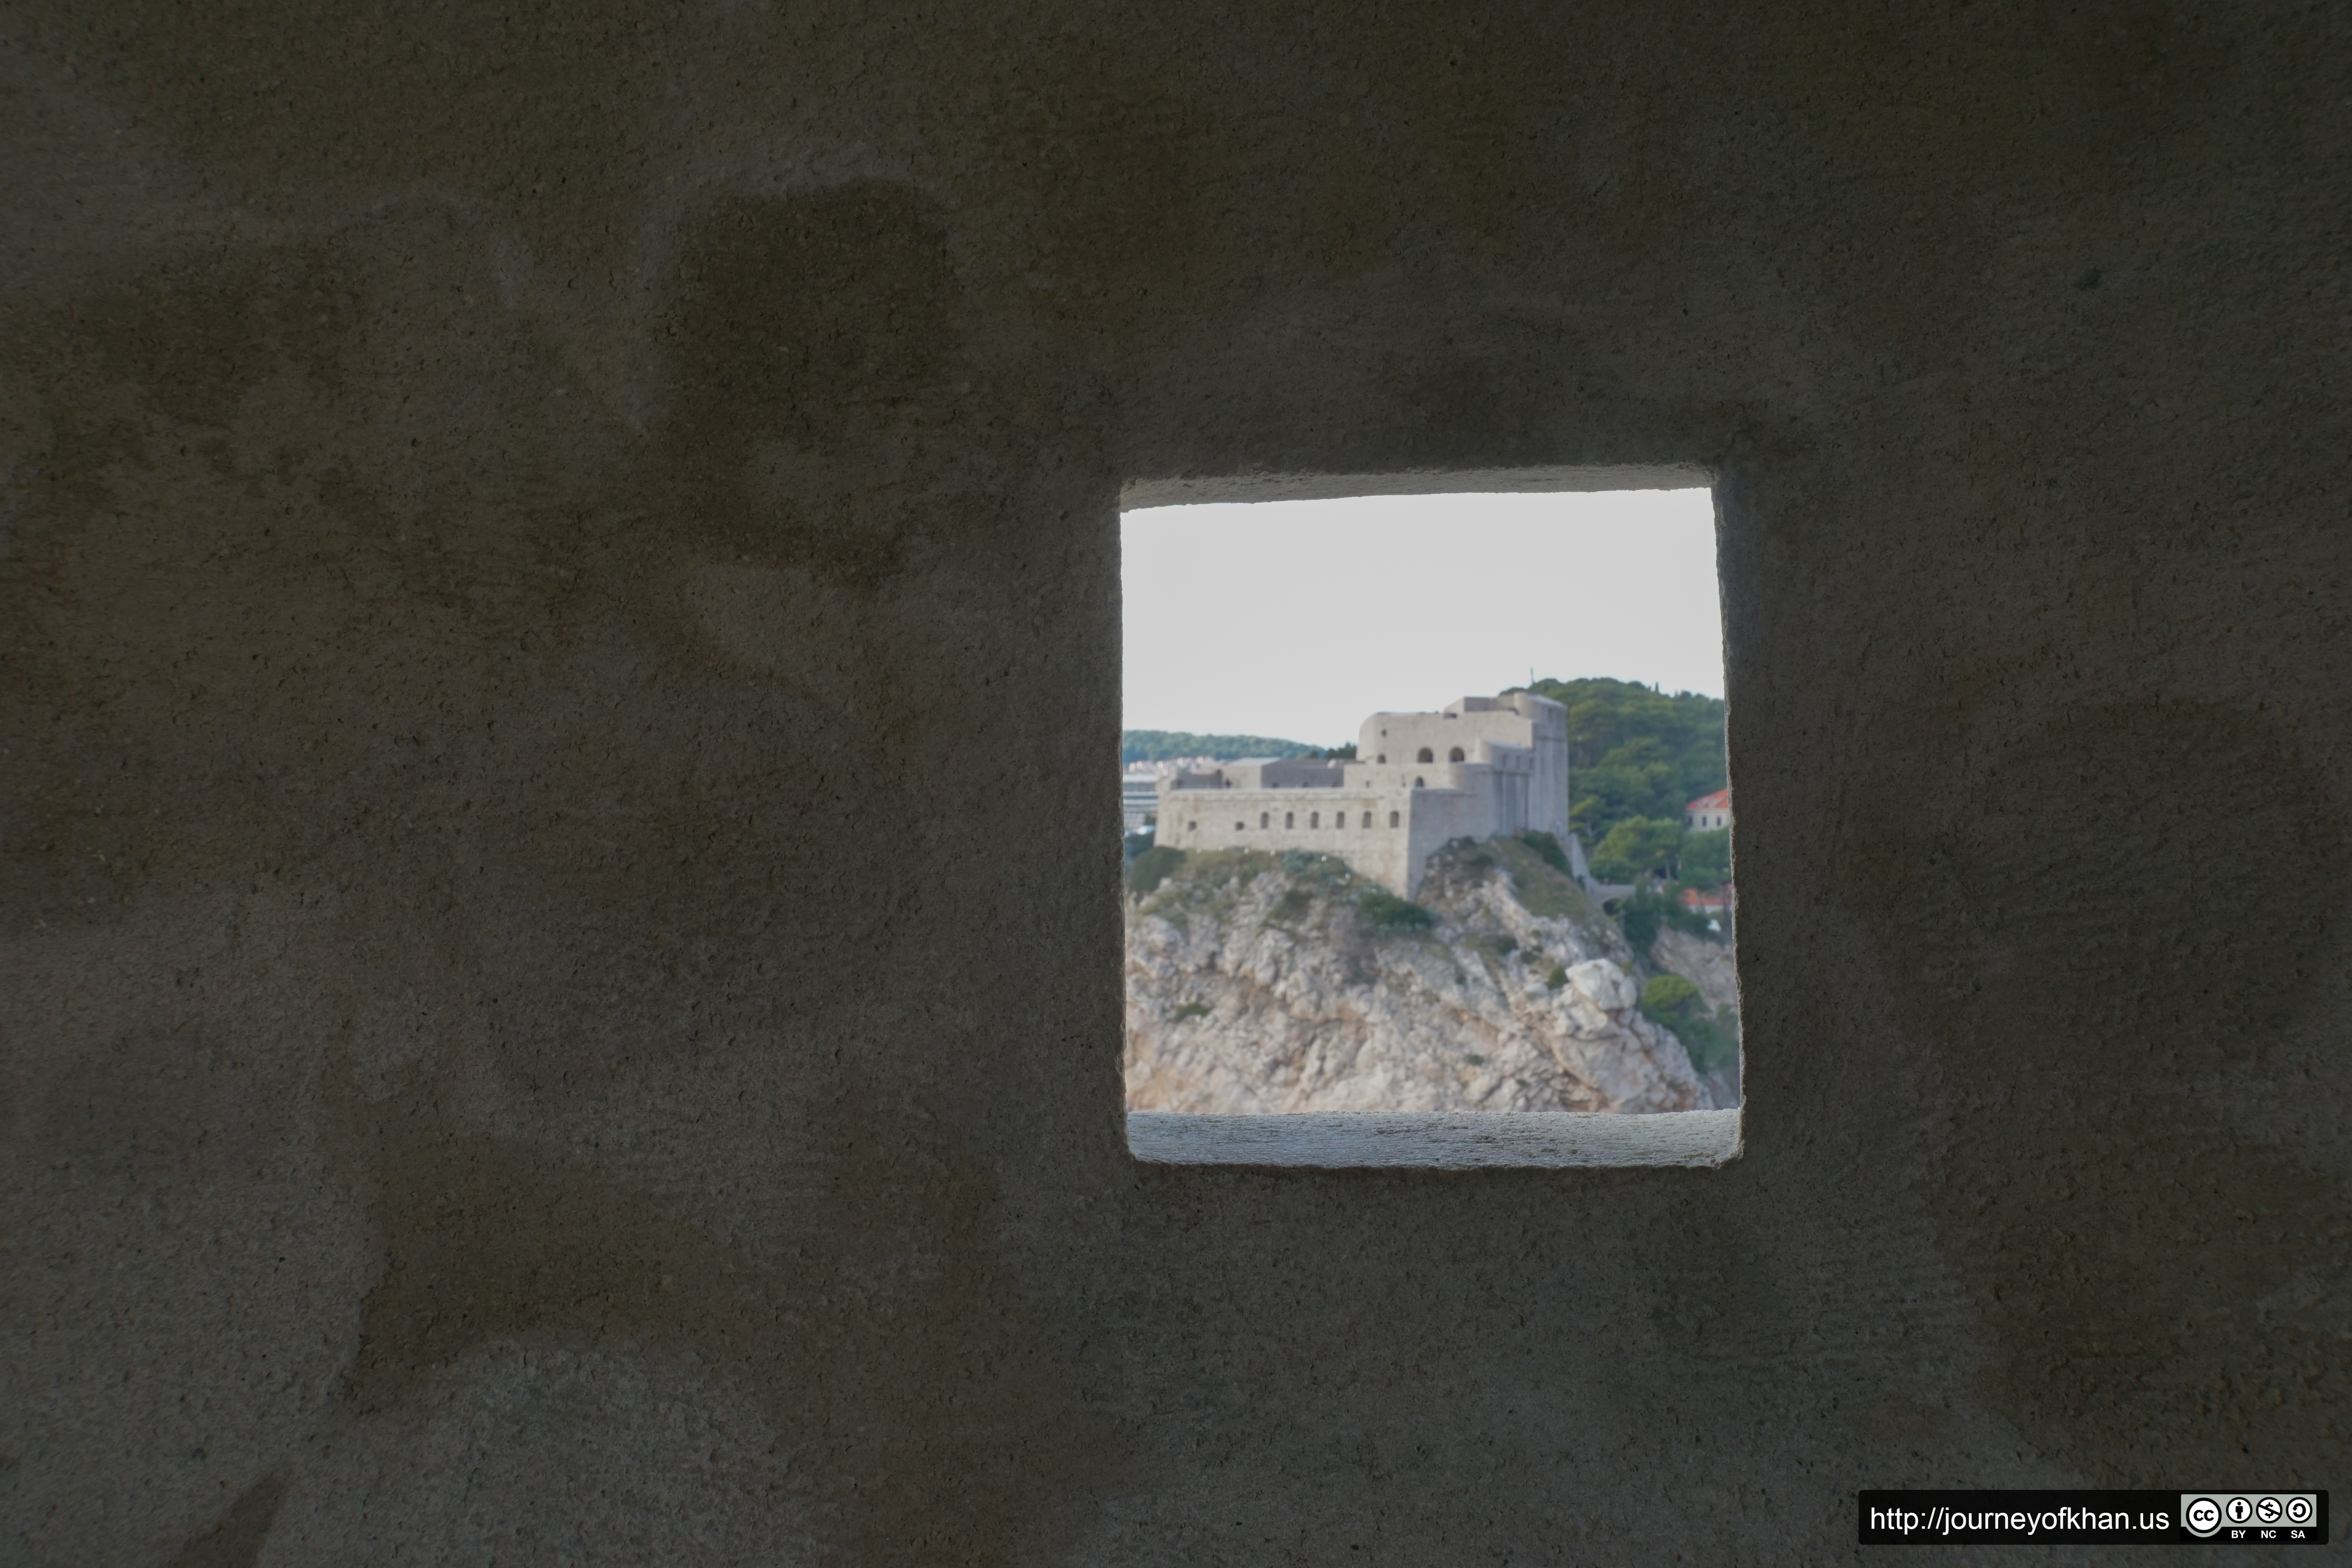 Fort in a Window (High Resolution)